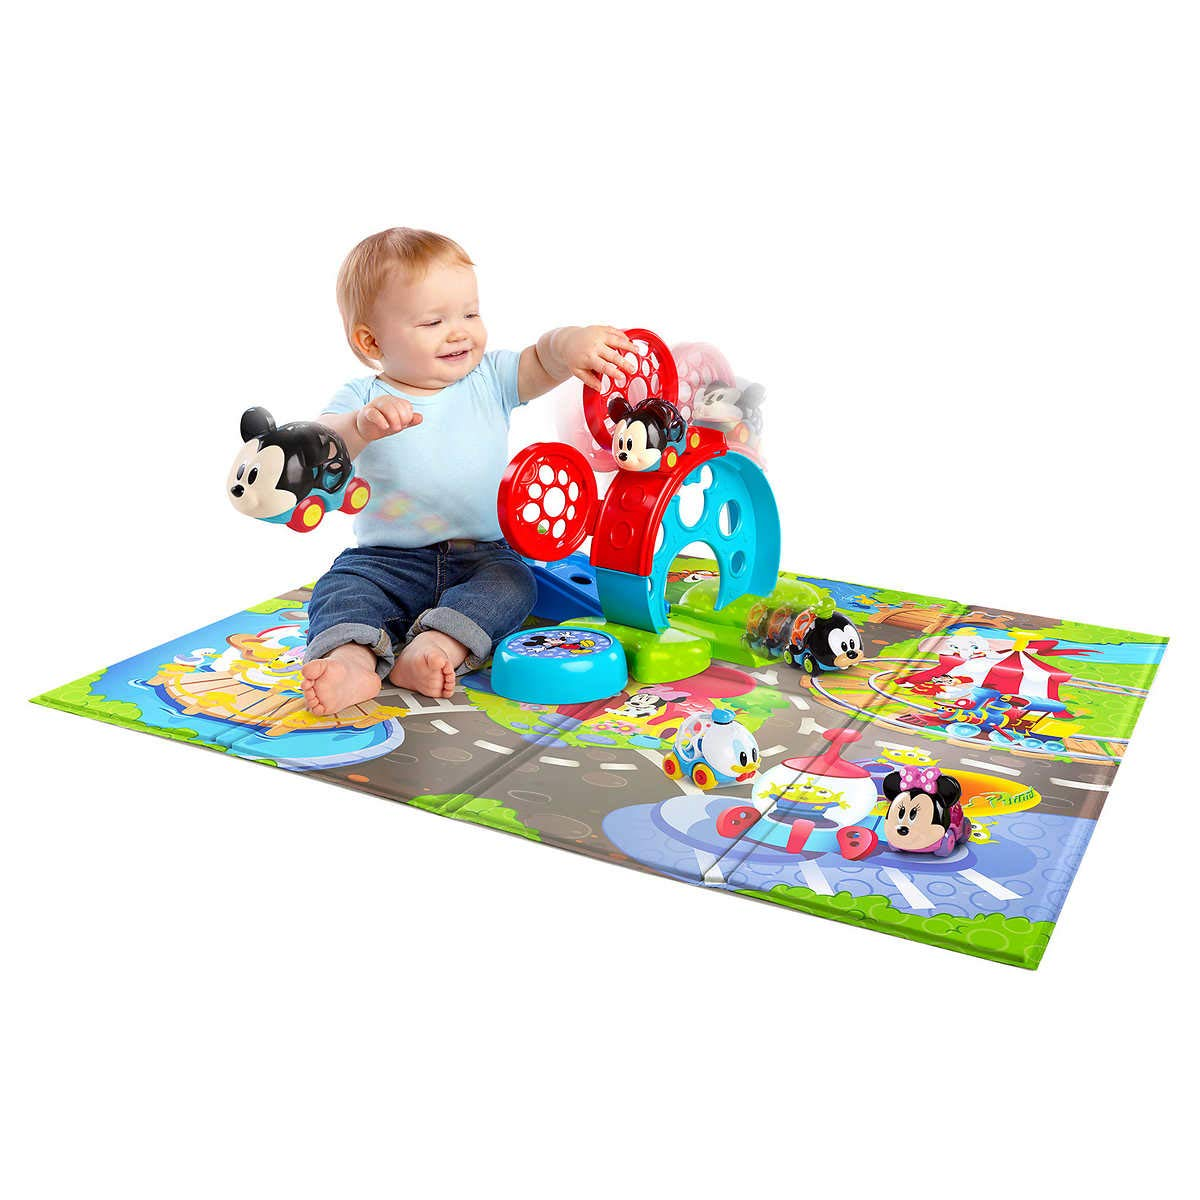 Mickey Friends Go Grippers Cars Oball Design Bounce Around Play Set Colorful Foam Mat, Perfect for Your Little One s Playtime Adventure , 2.1 lb